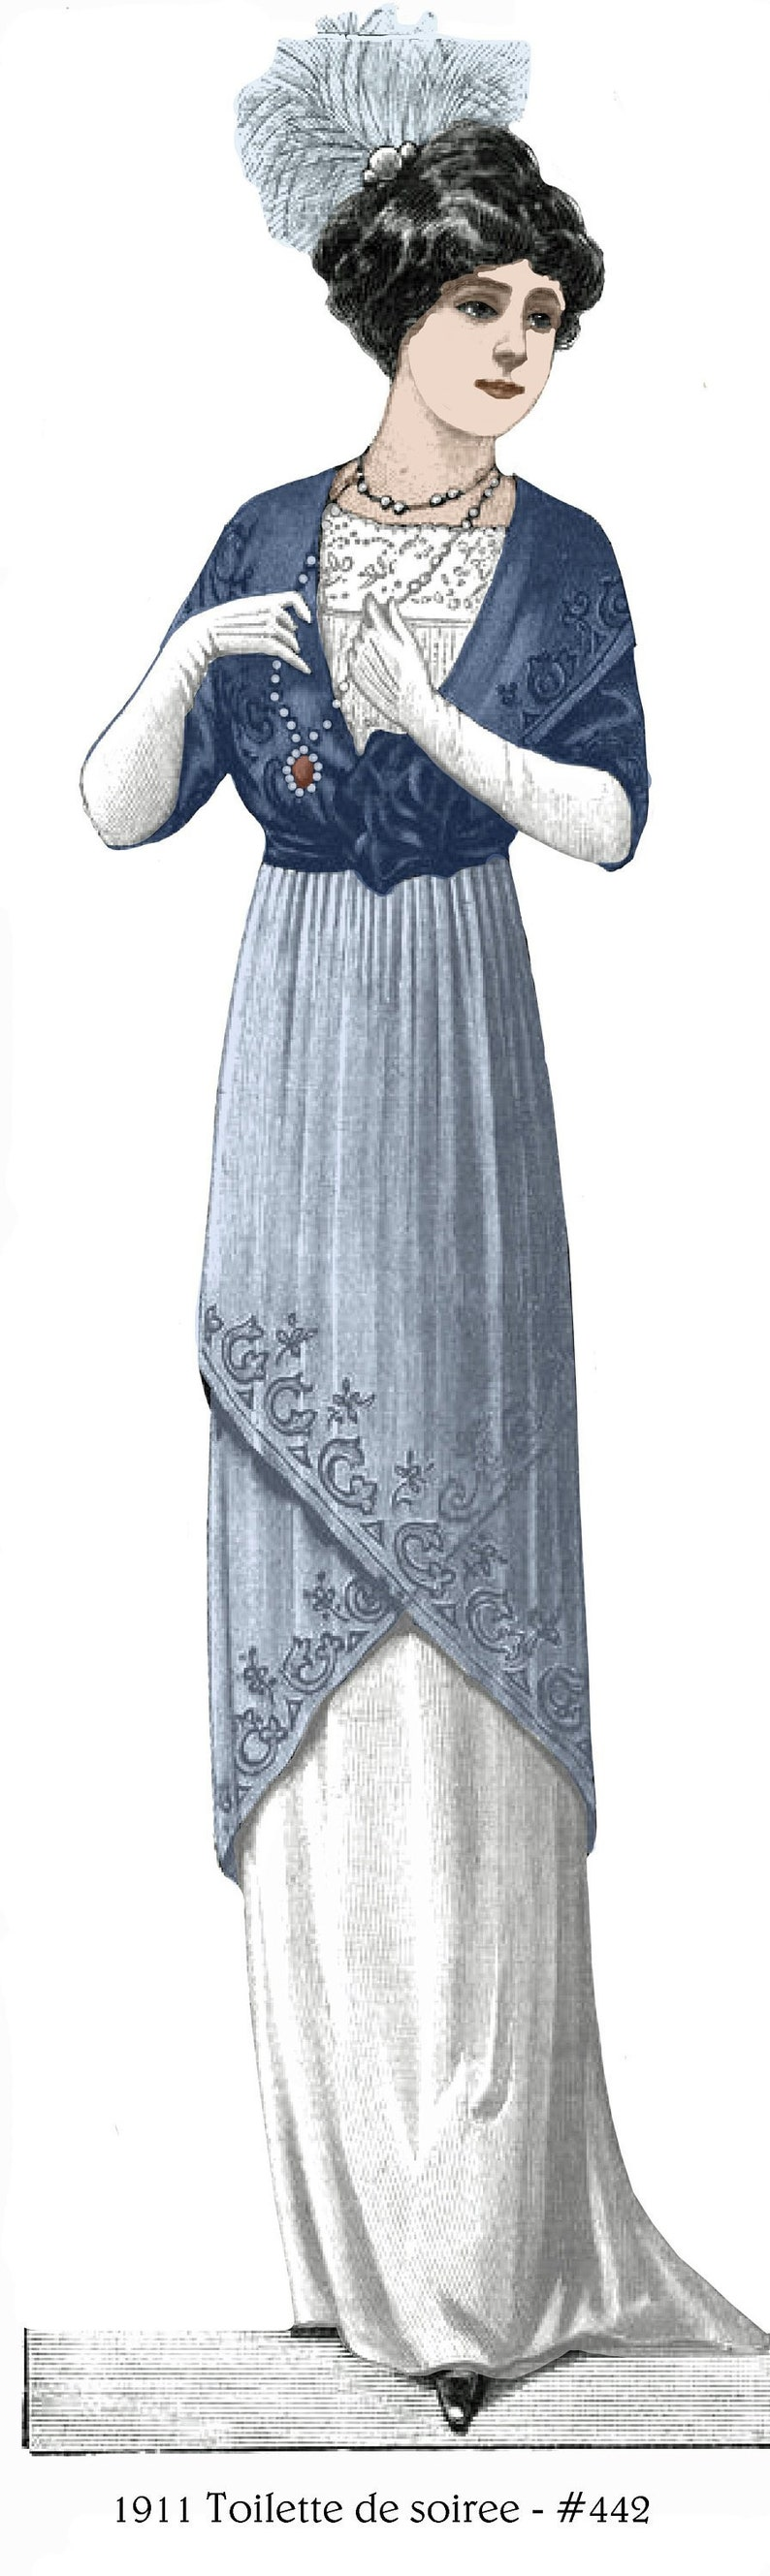 Titanic Clothing, Fashion, Outfit Ideas 1911 Titanic/Downton Gown for soiree - sized for you from antique original - includes bonus lingerie patterns library - #442 $9.95 AT vintagedancer.com